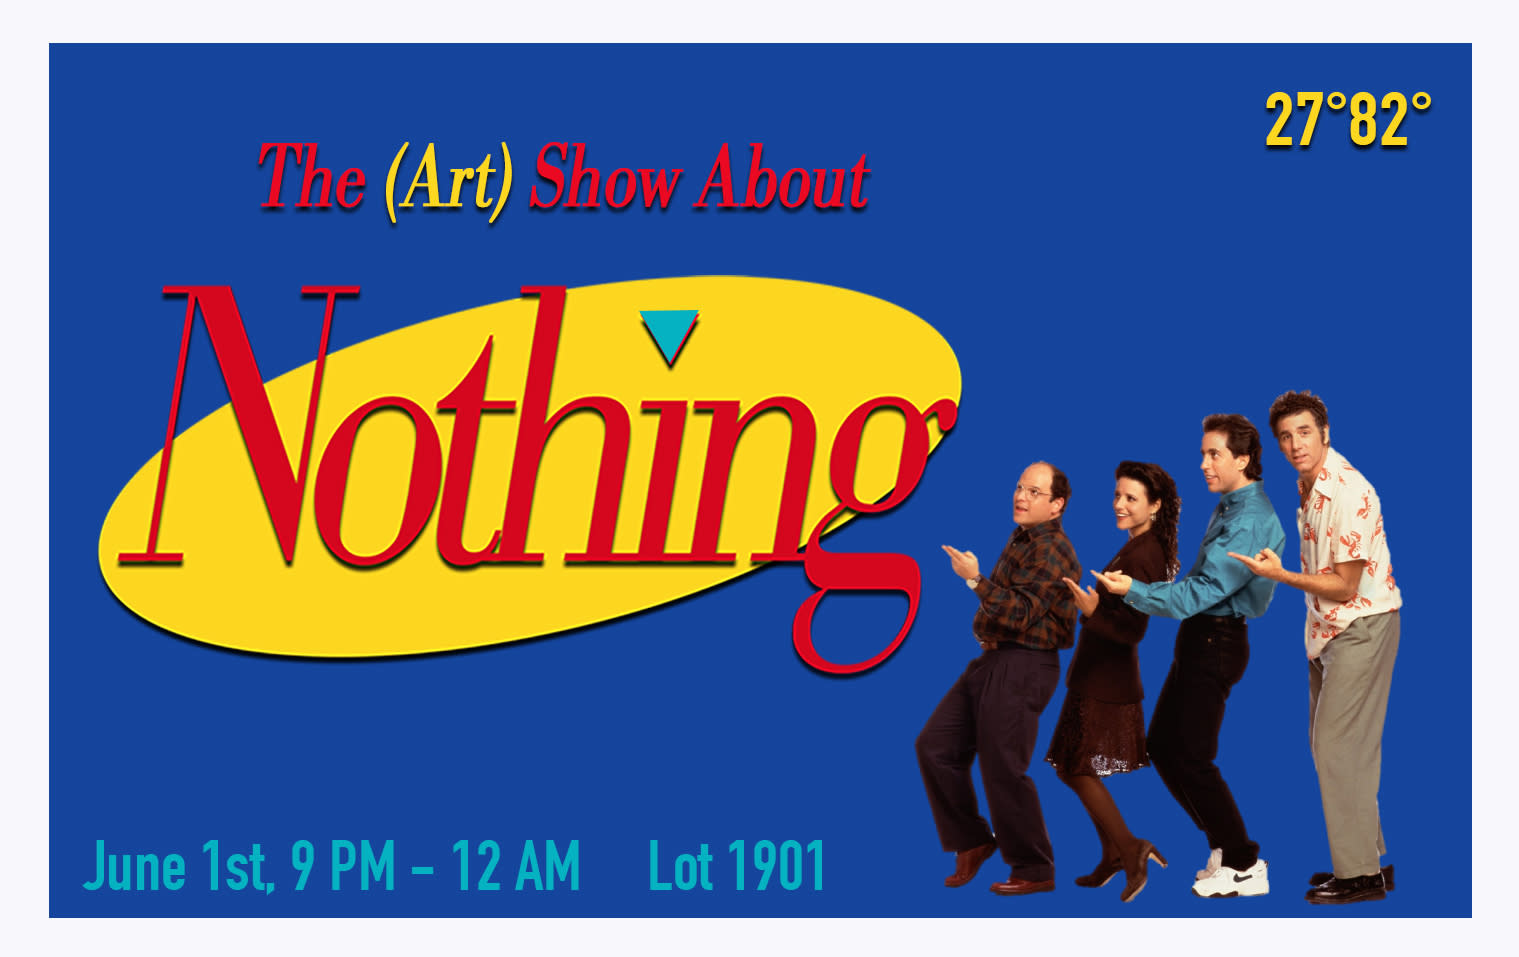 The (Art) Show About Nothing